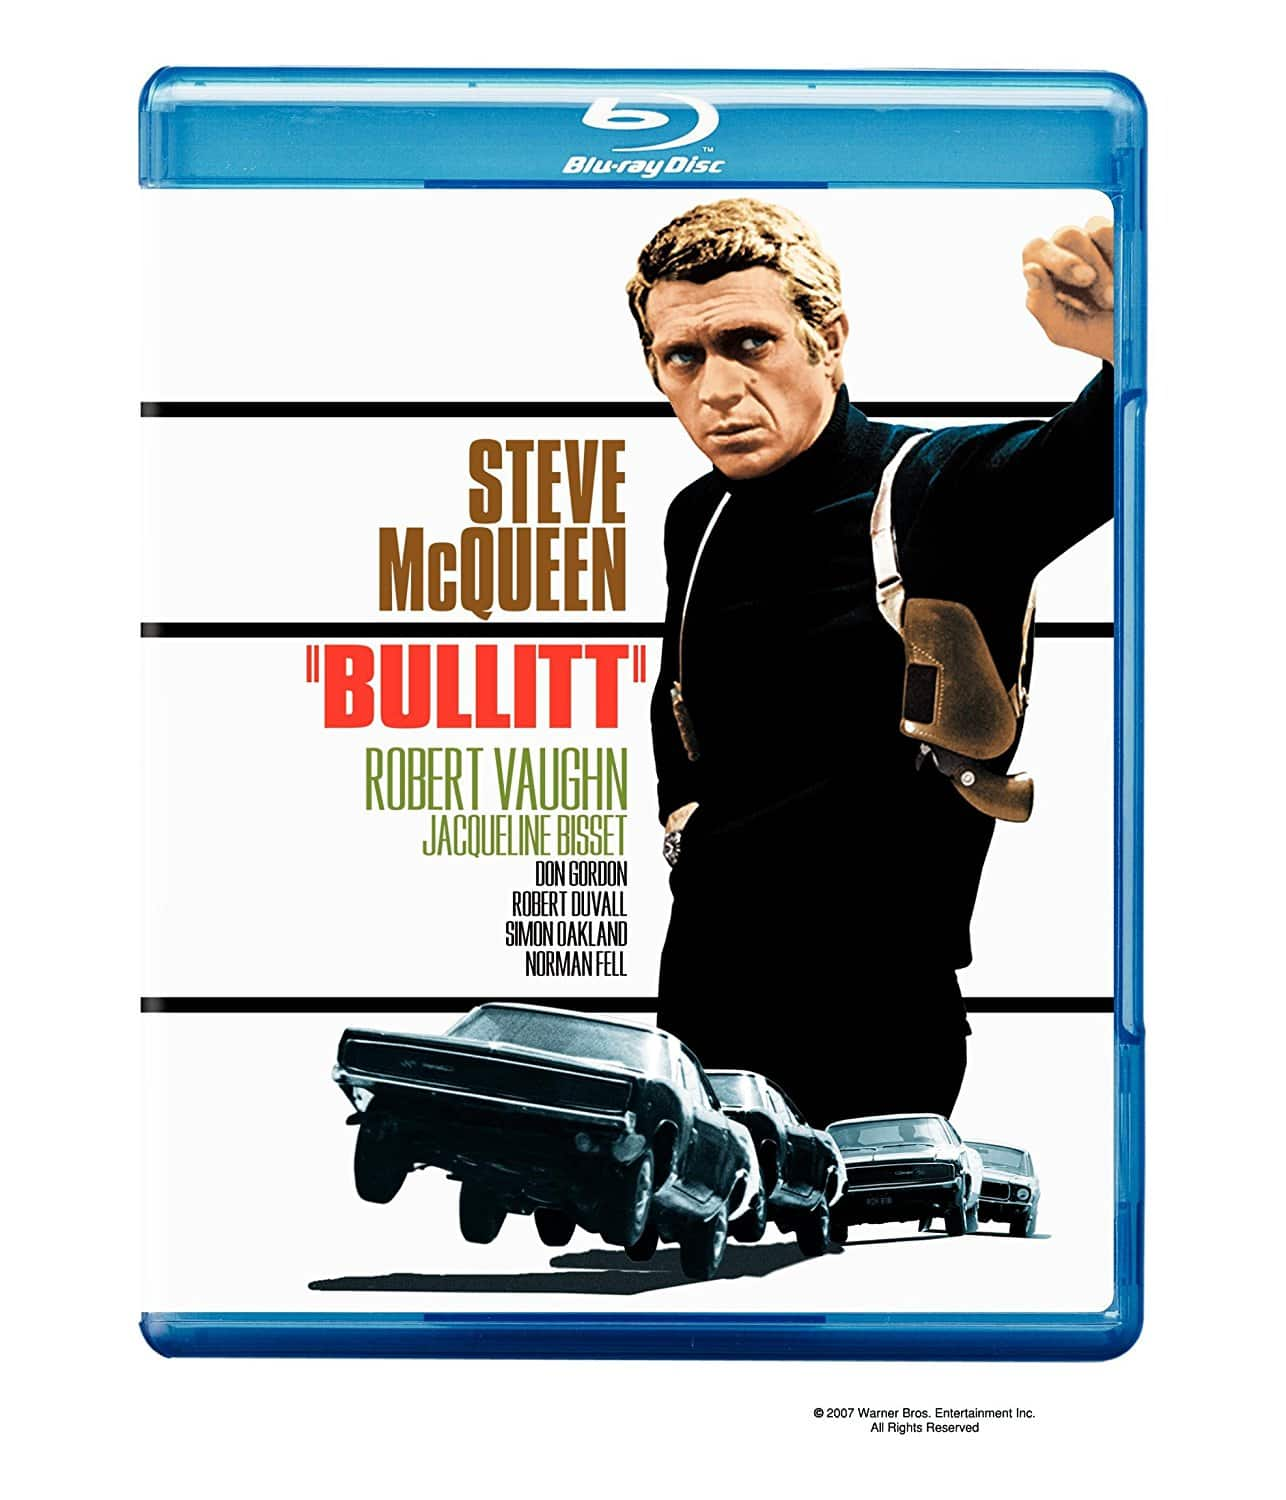 Bullitt  (Blu-ray)  for  $5.99  at  Amazon.com